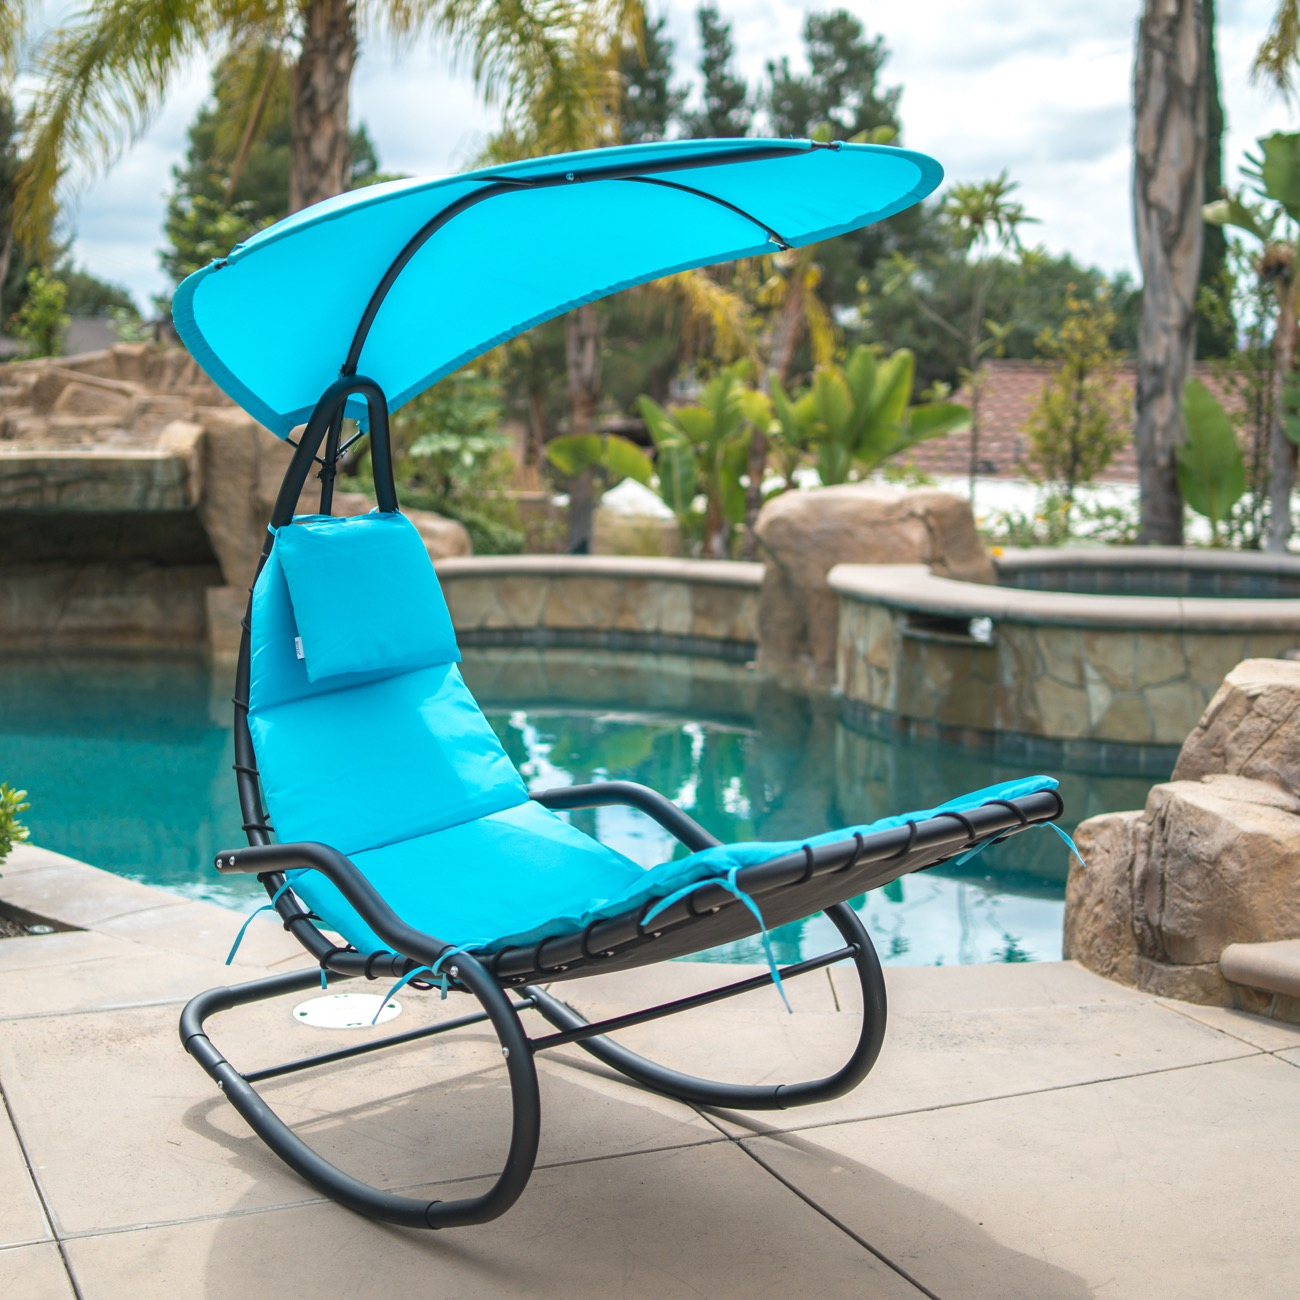 BELLEZE Hanging Rocking Sunshade Canopy Chair Chaise Umbrella Lounge Arc Patio Padded Cushions, Beige